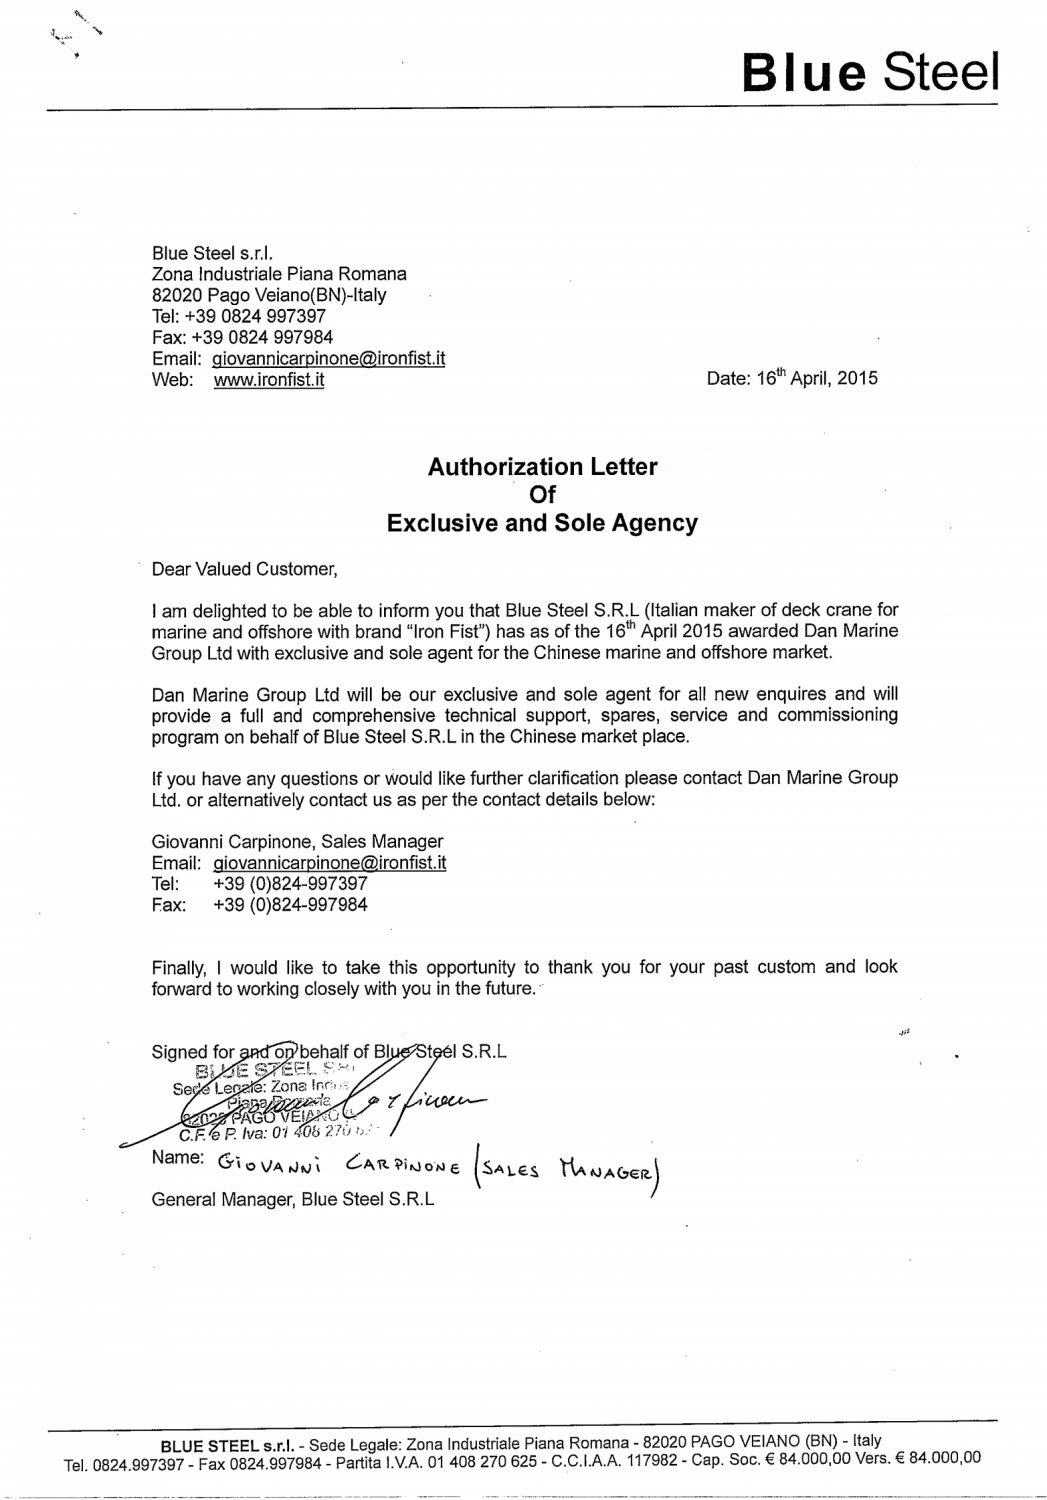 Authorization letter from Blue Steel SRL_00